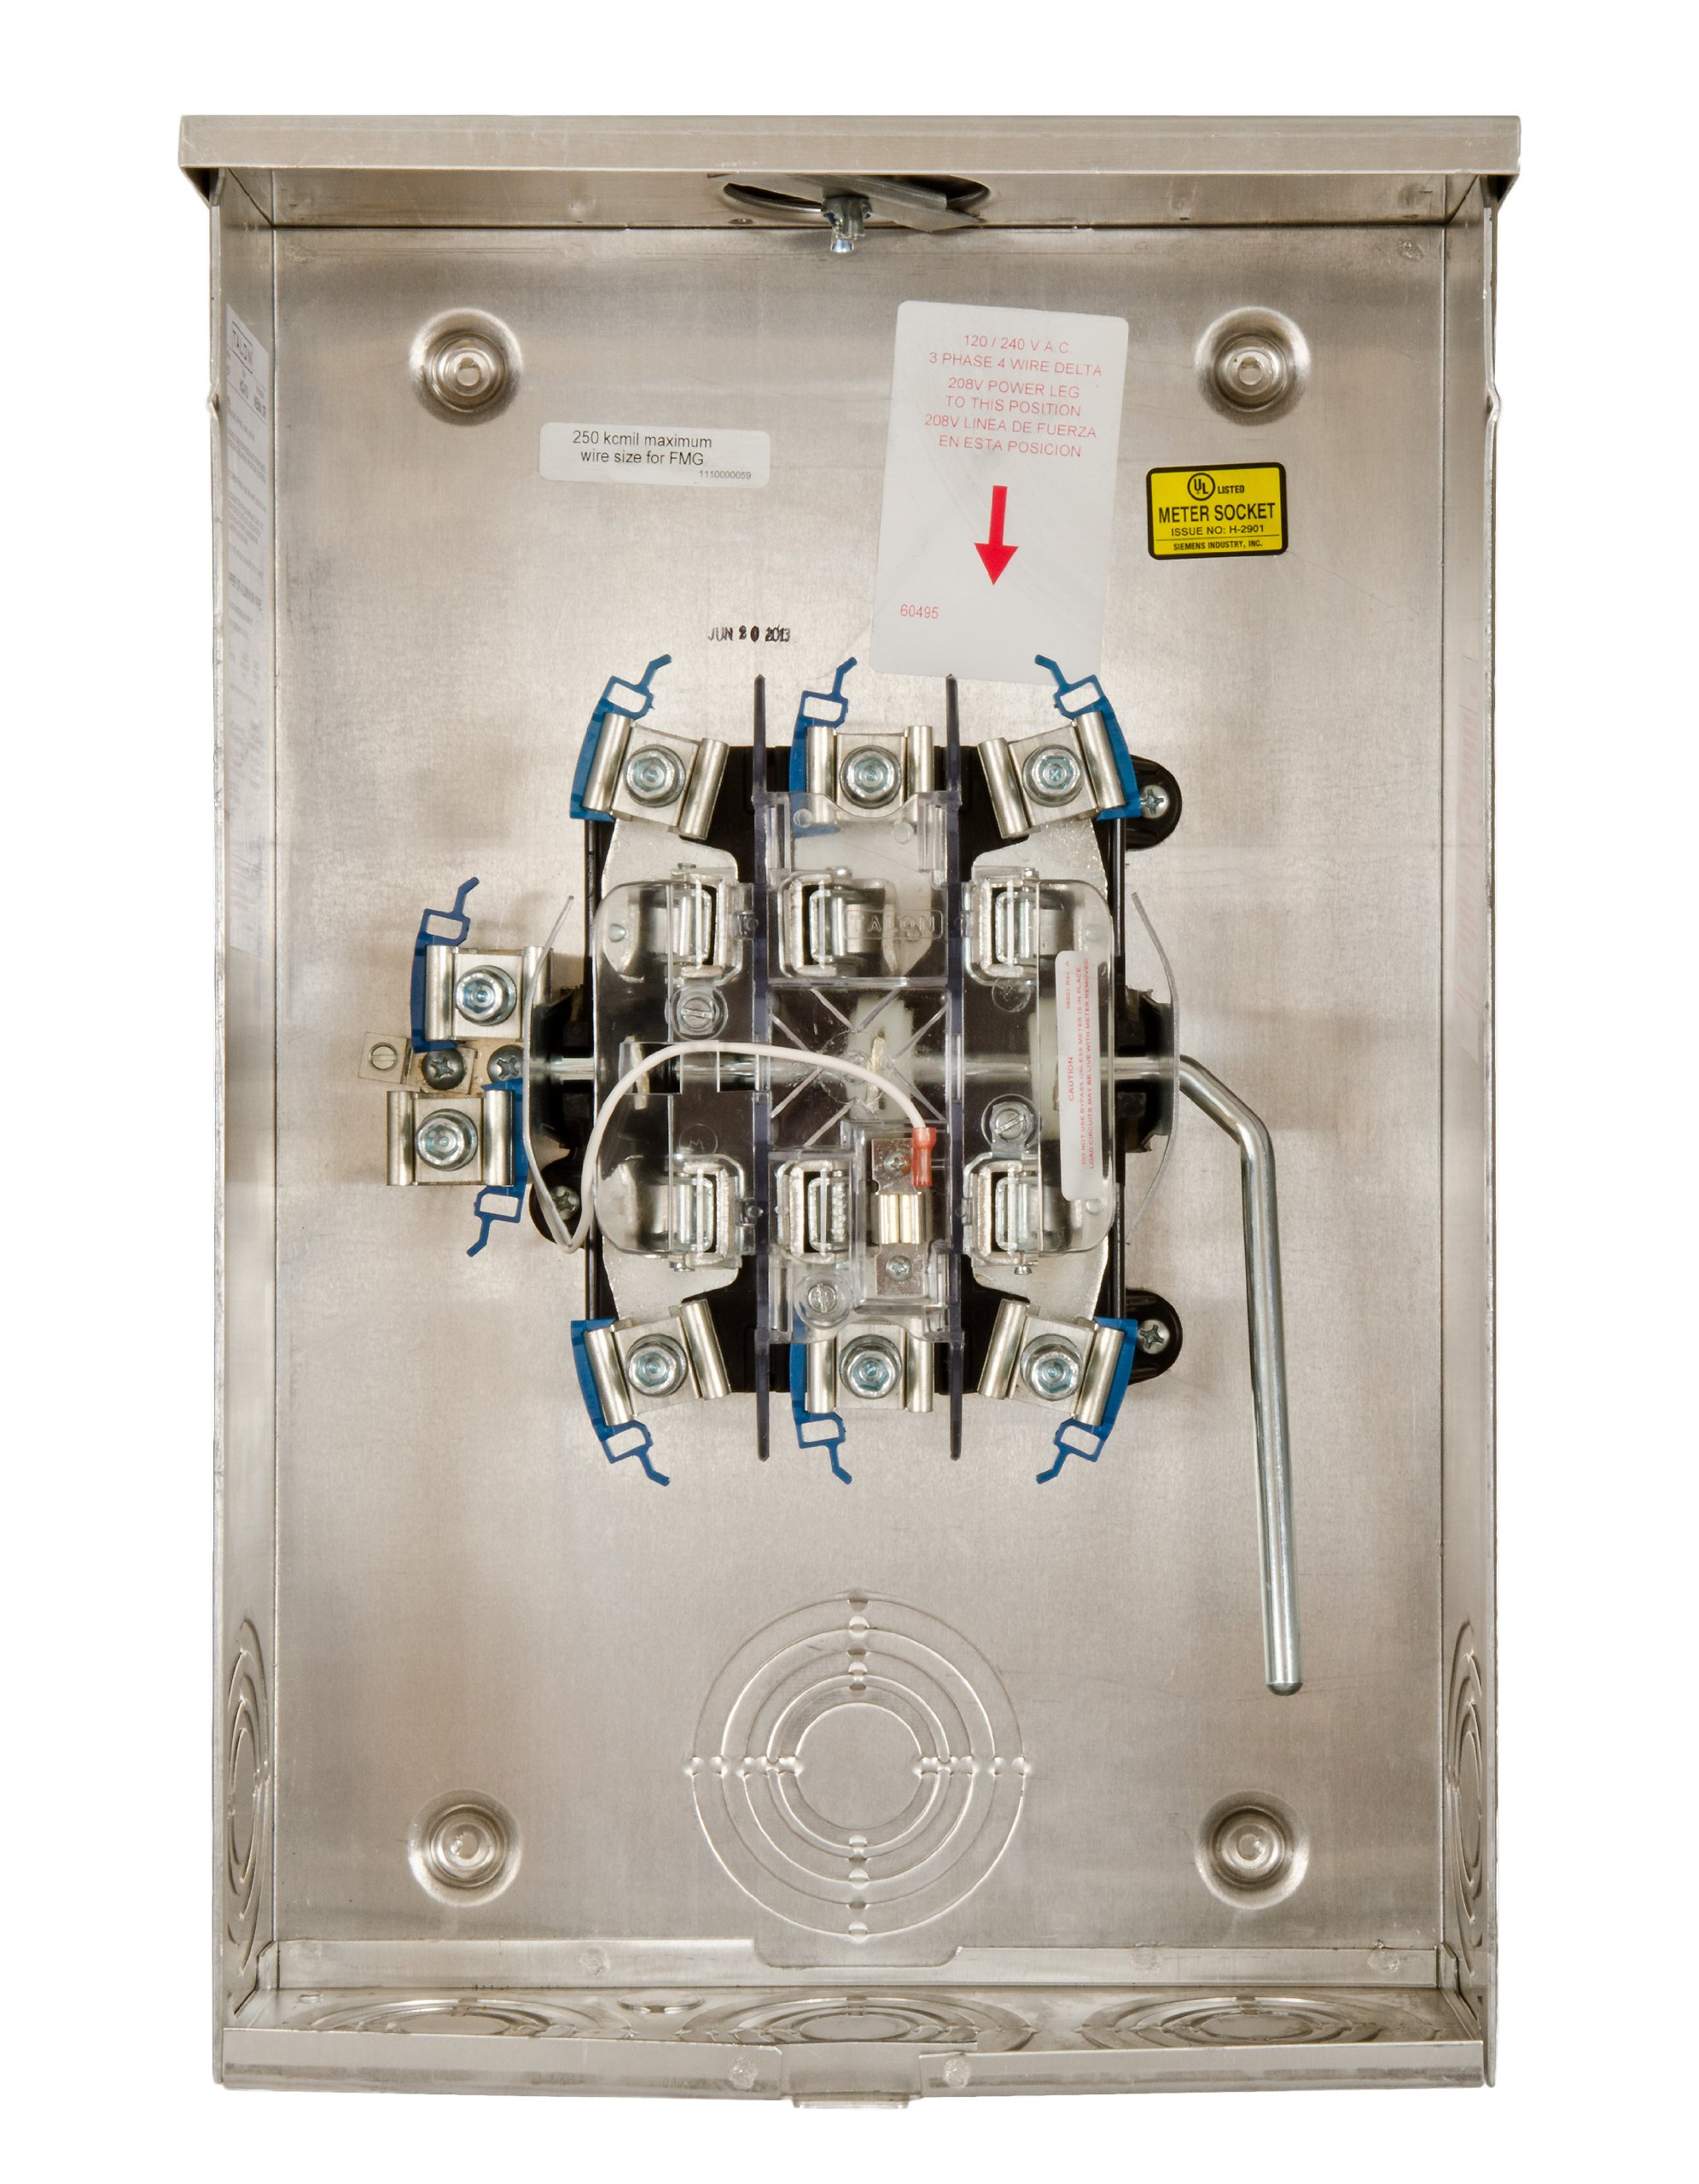 Talon 41407-025F 200-Amp, 7 Jaw, Ringless Cover, Lever Bypass, Overhead And Underground Feed, Aluminum Enclosure, 3-Phase Meter Socket by Talon